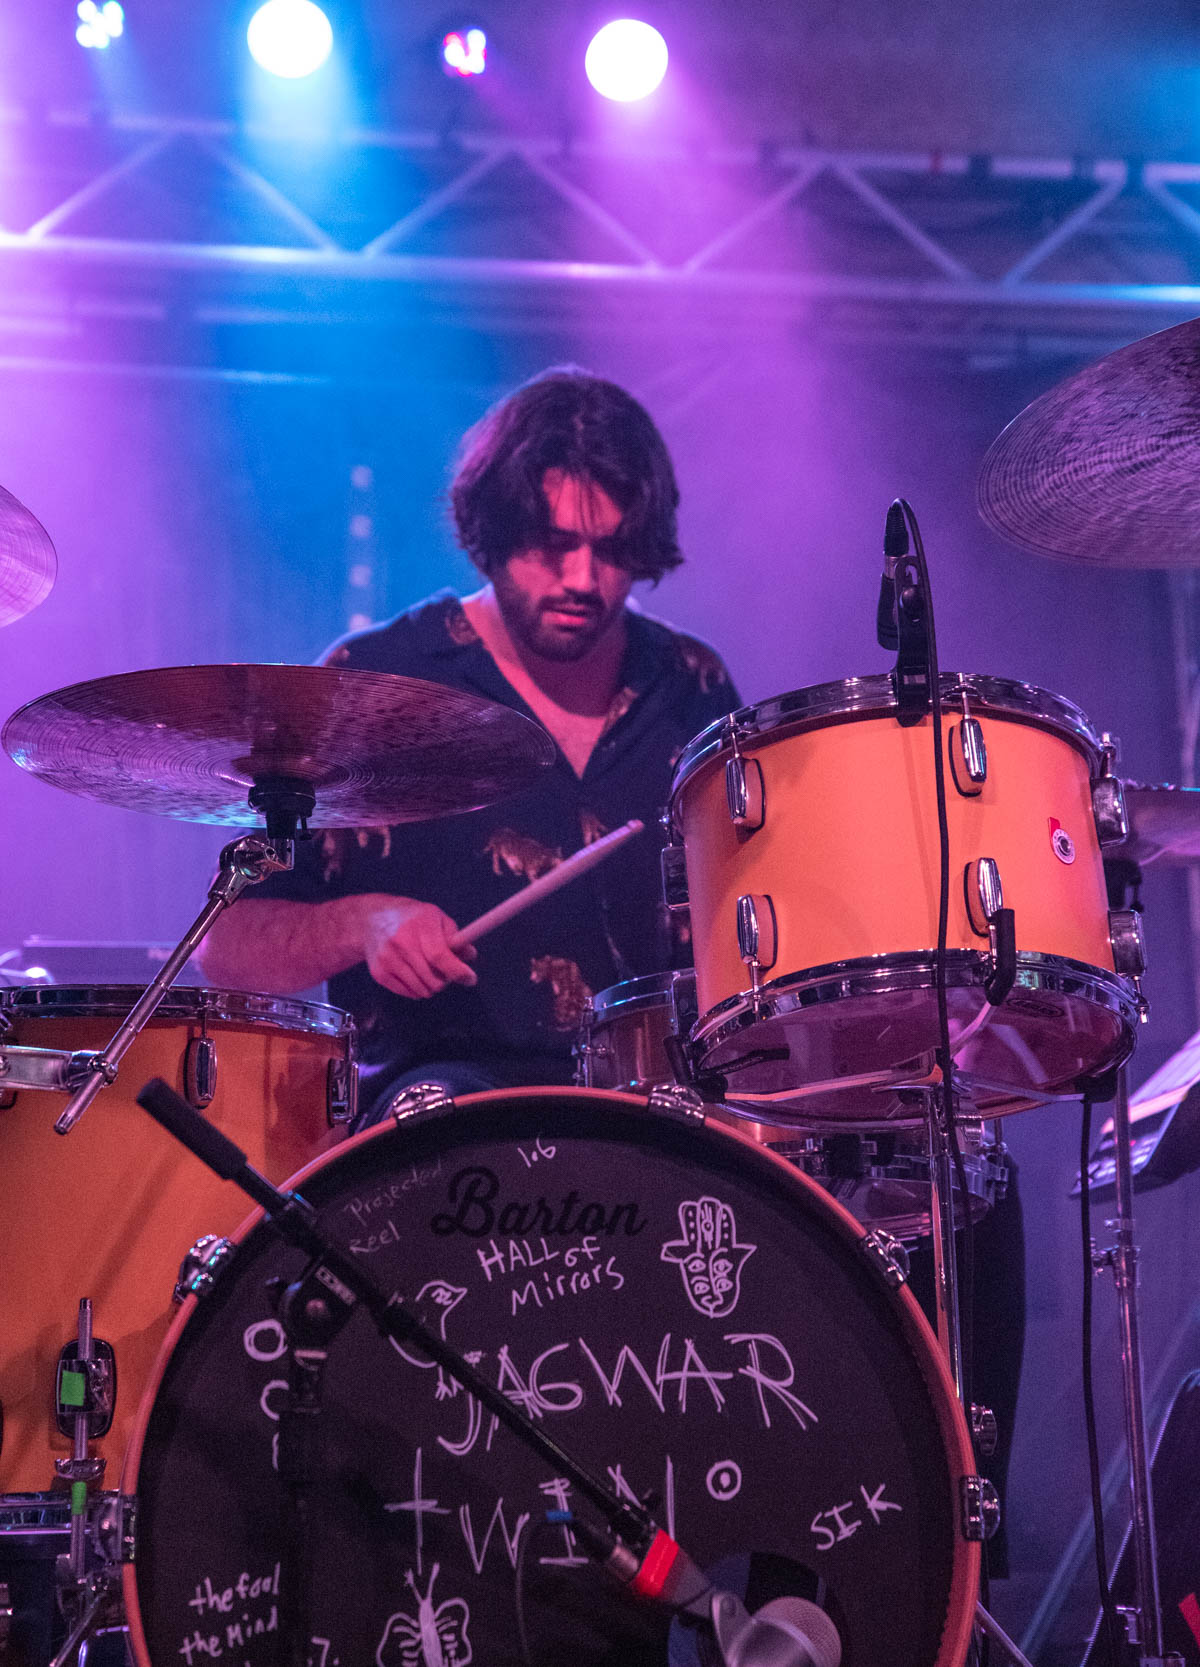 Jagwar Twin plays The Deluxe in Indianapolis, IN. on 4/30/19